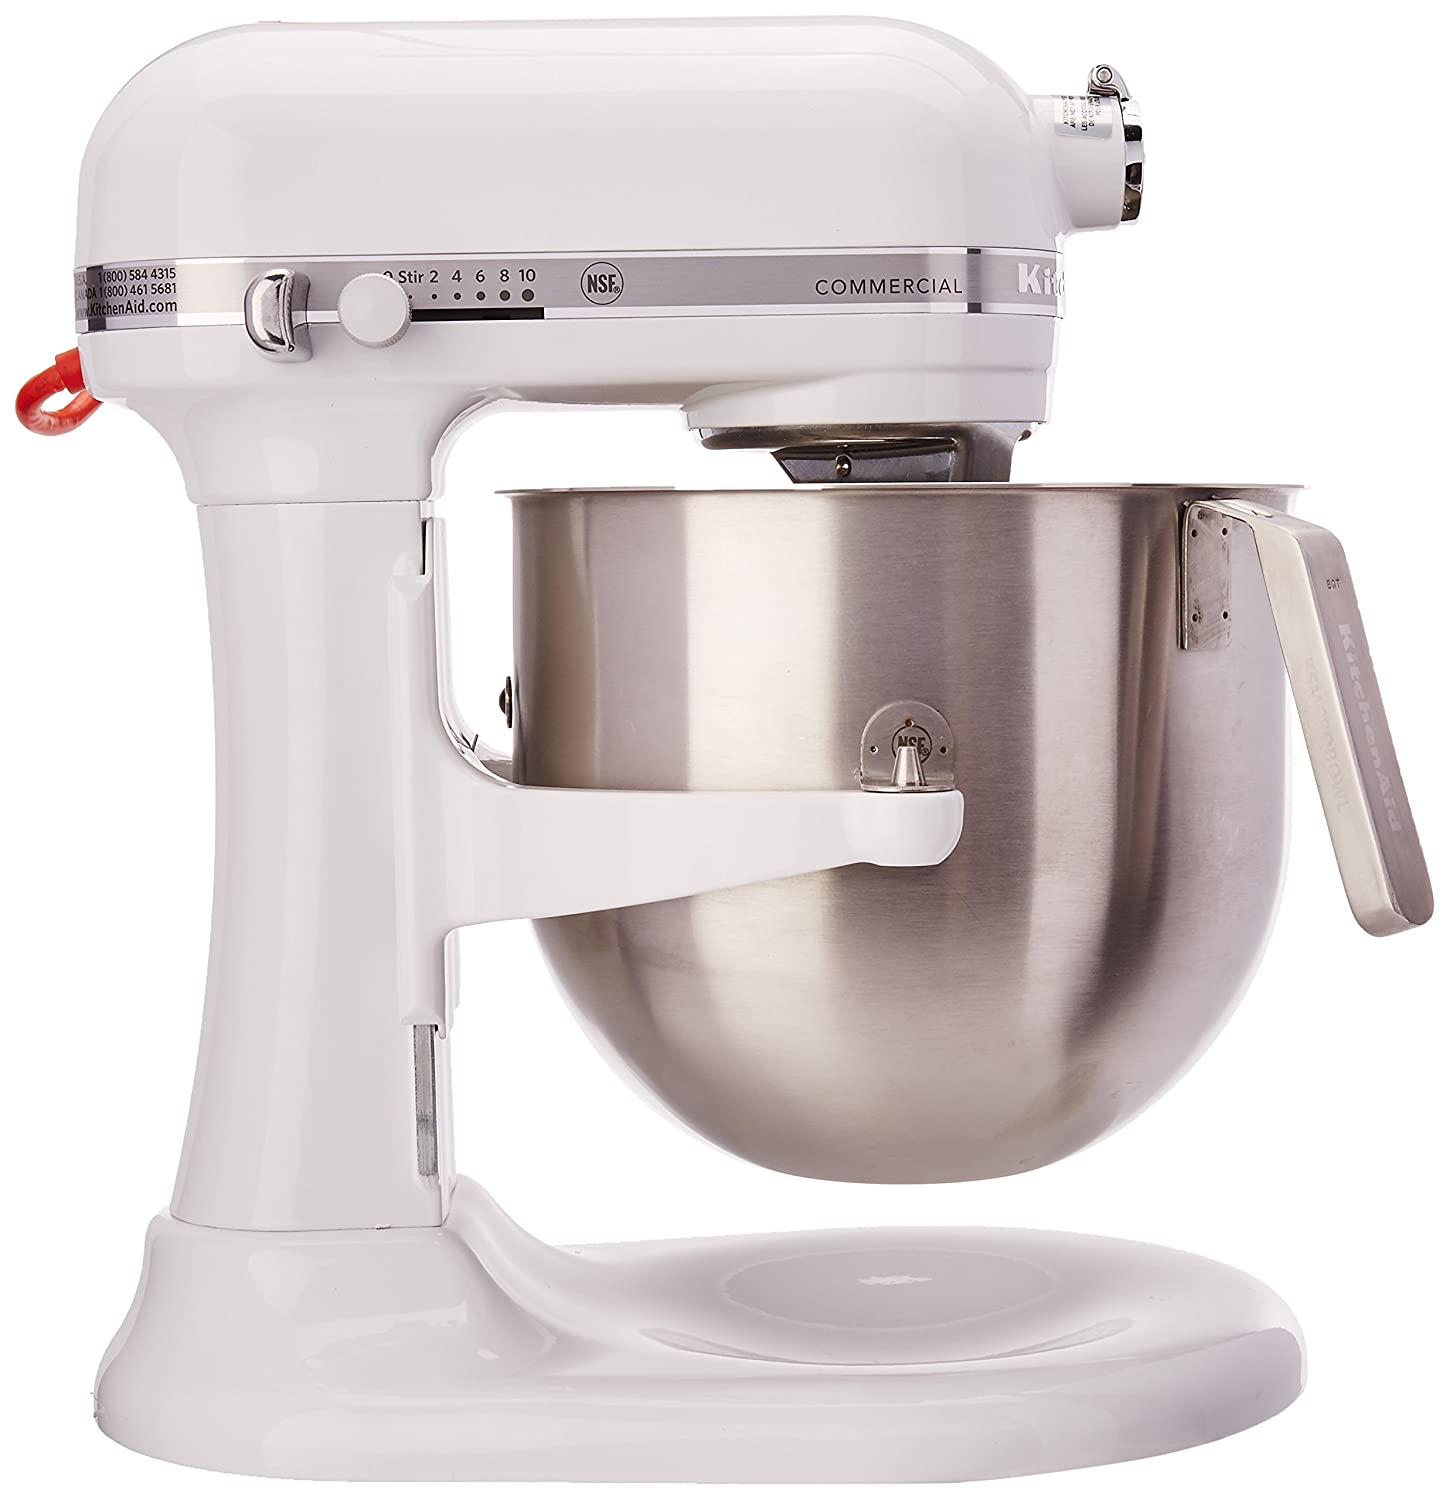 Amazon.com: KitchenAid (KSM8990WH) 8 Quart Stand Mixer With Bowl Lift  (White): Electric Stand Mixers: Kitchen U0026 Dining